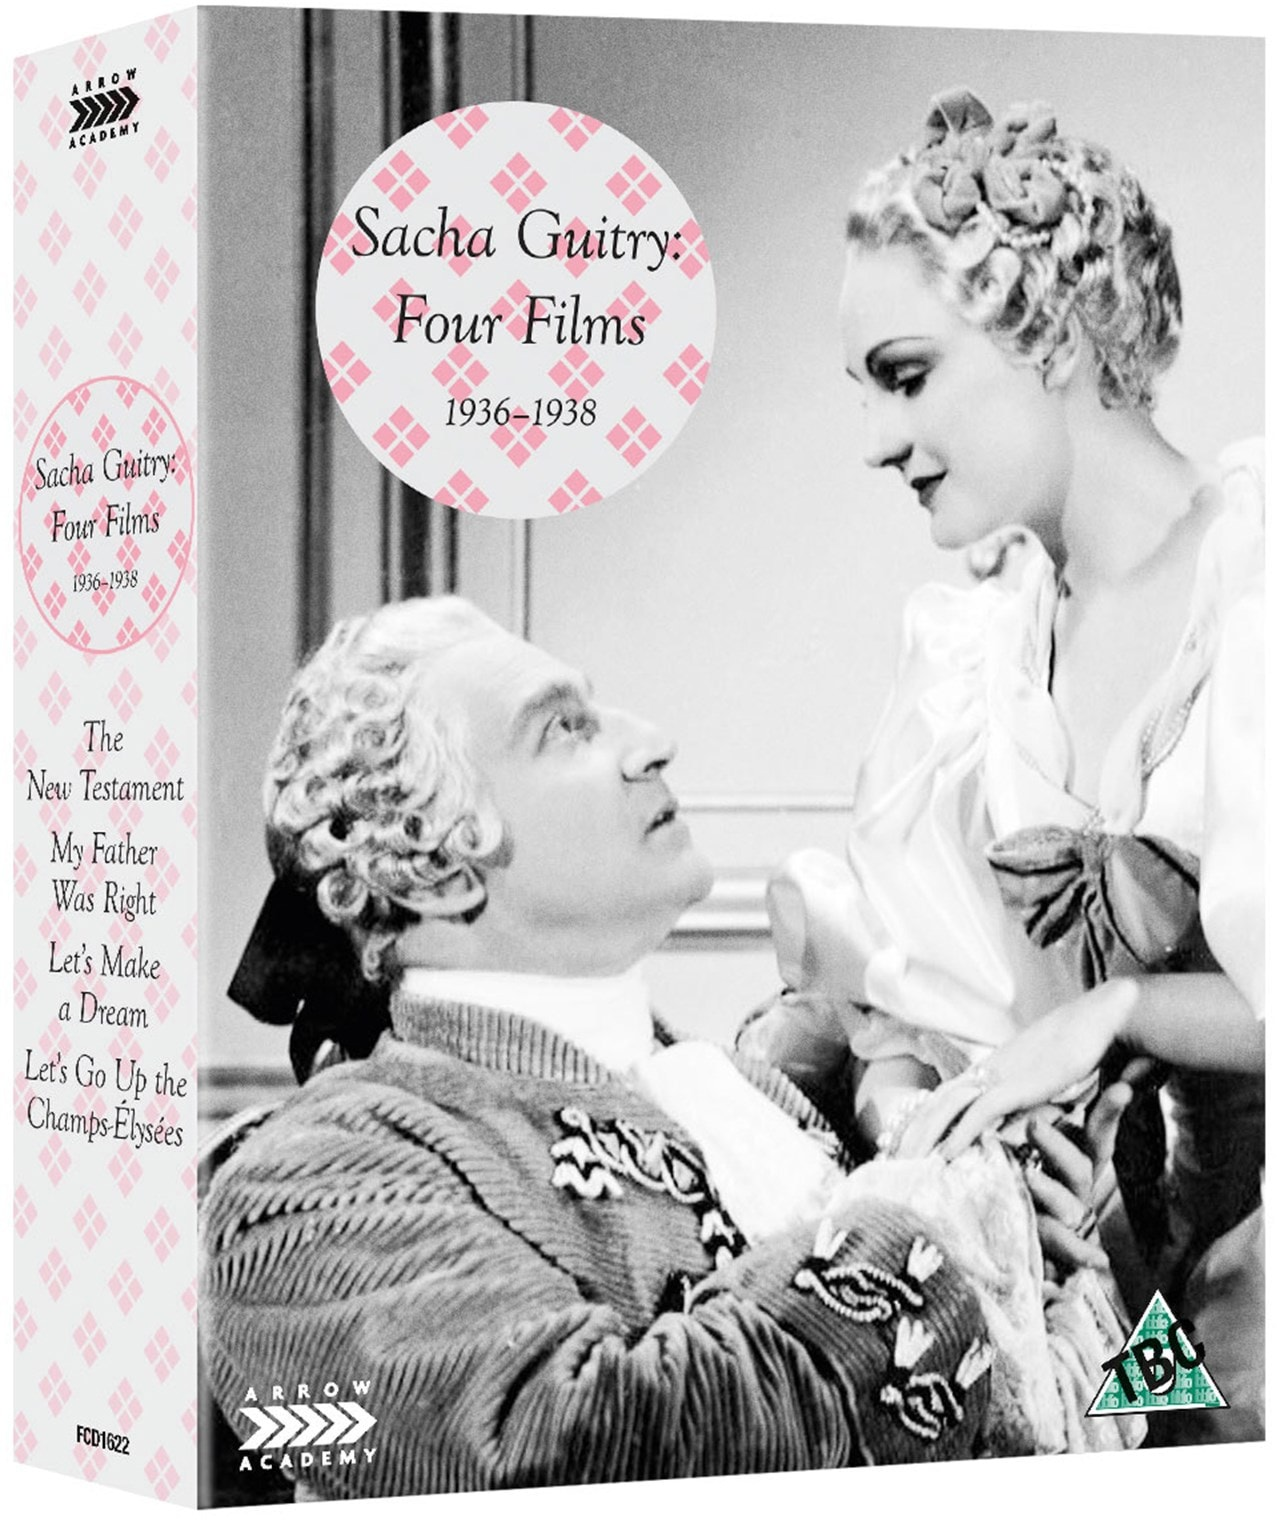 Sacha Guitry: Four Films 1936-1938 - 2